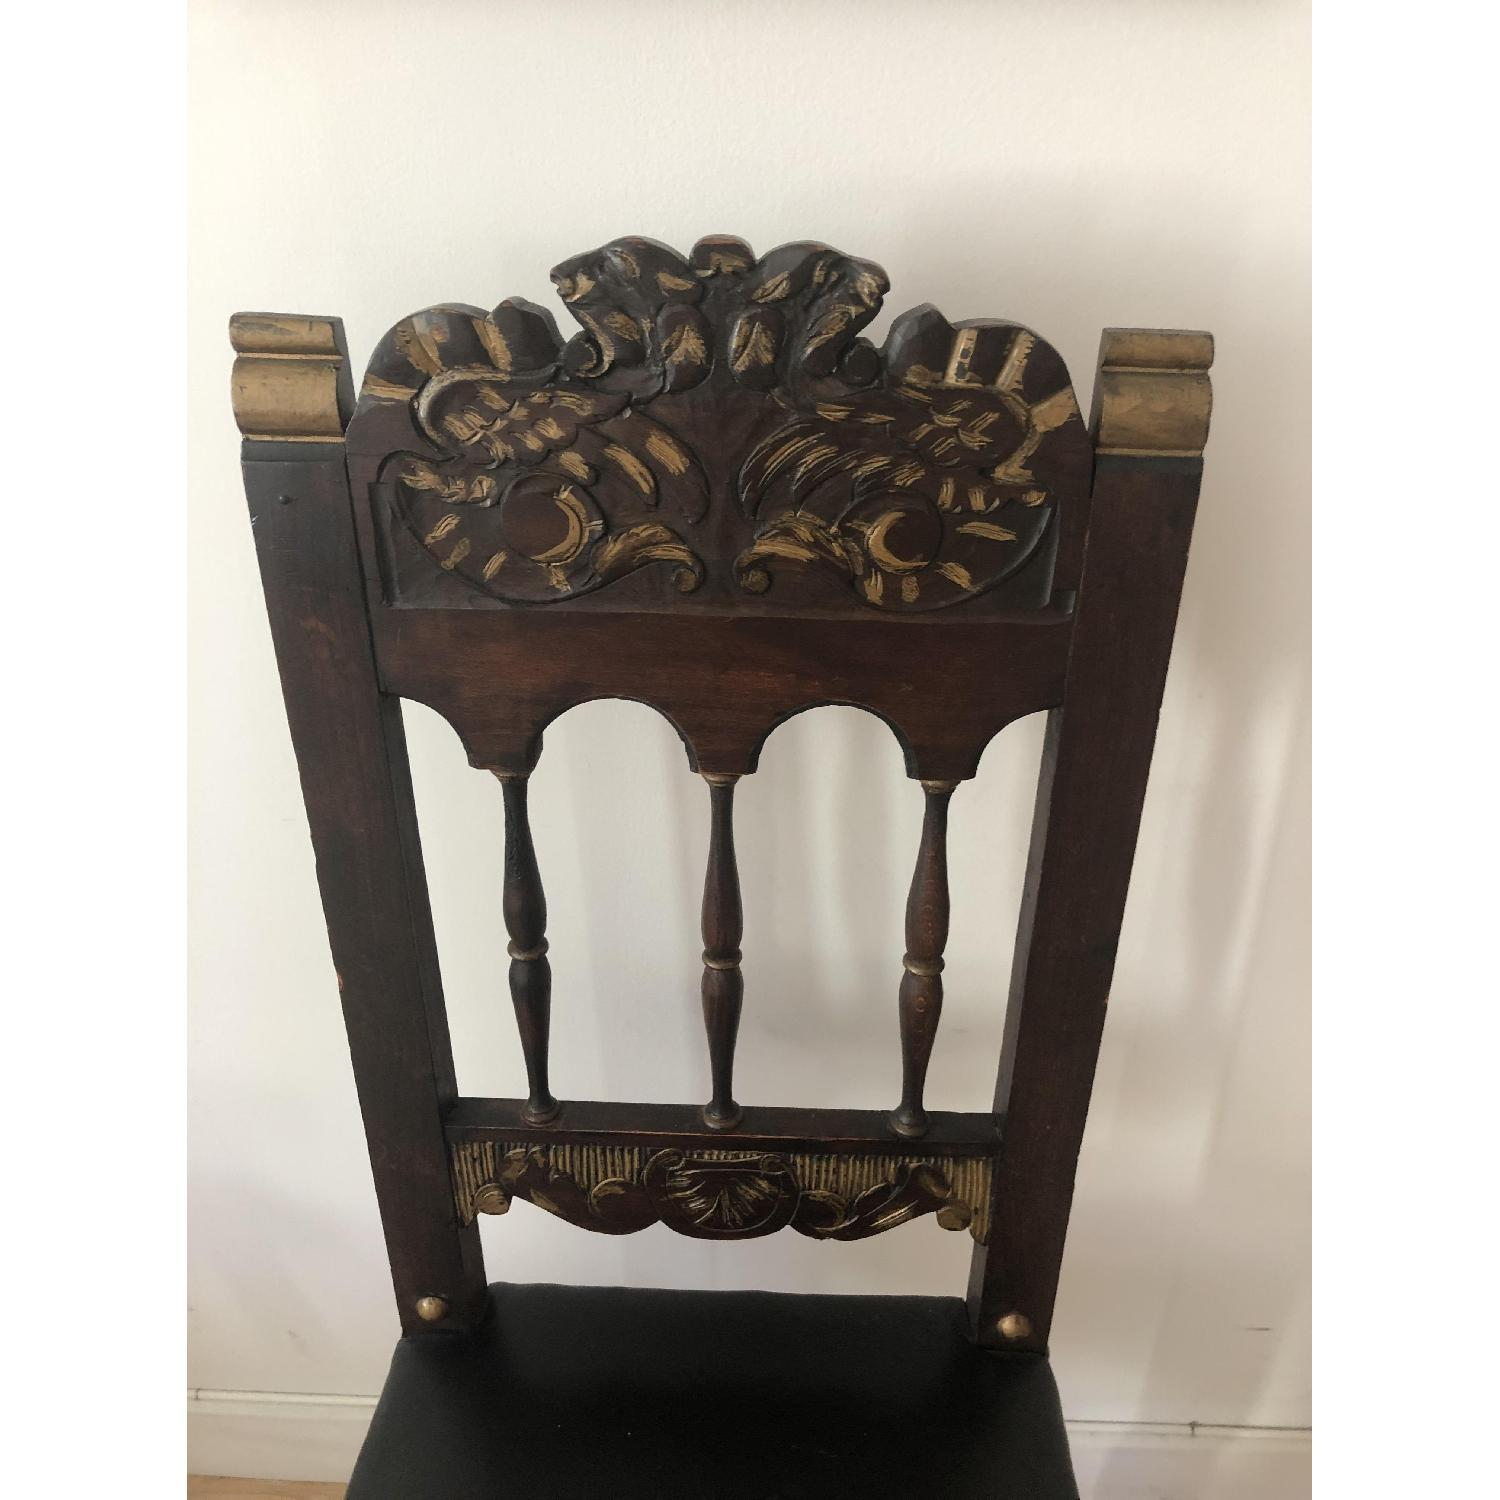 Antique Claw Foot Chair w/ Leather Seat - image-1